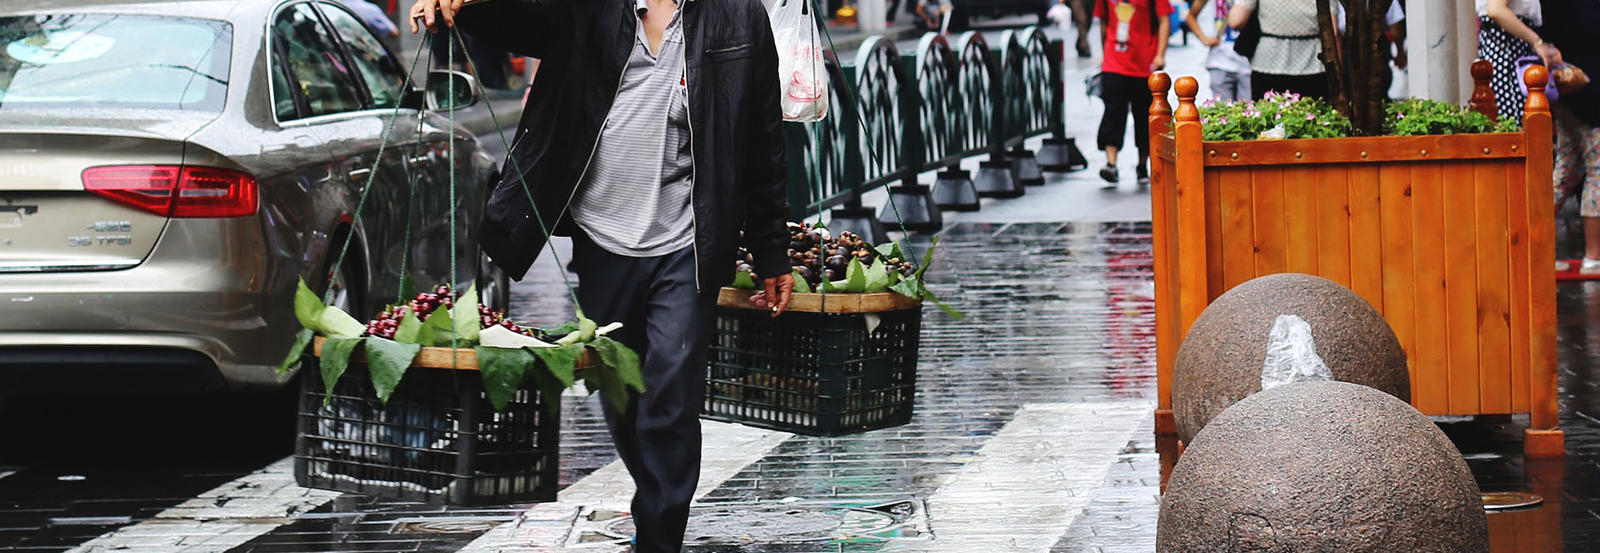 an elderly man walking down the street holding baskets of food